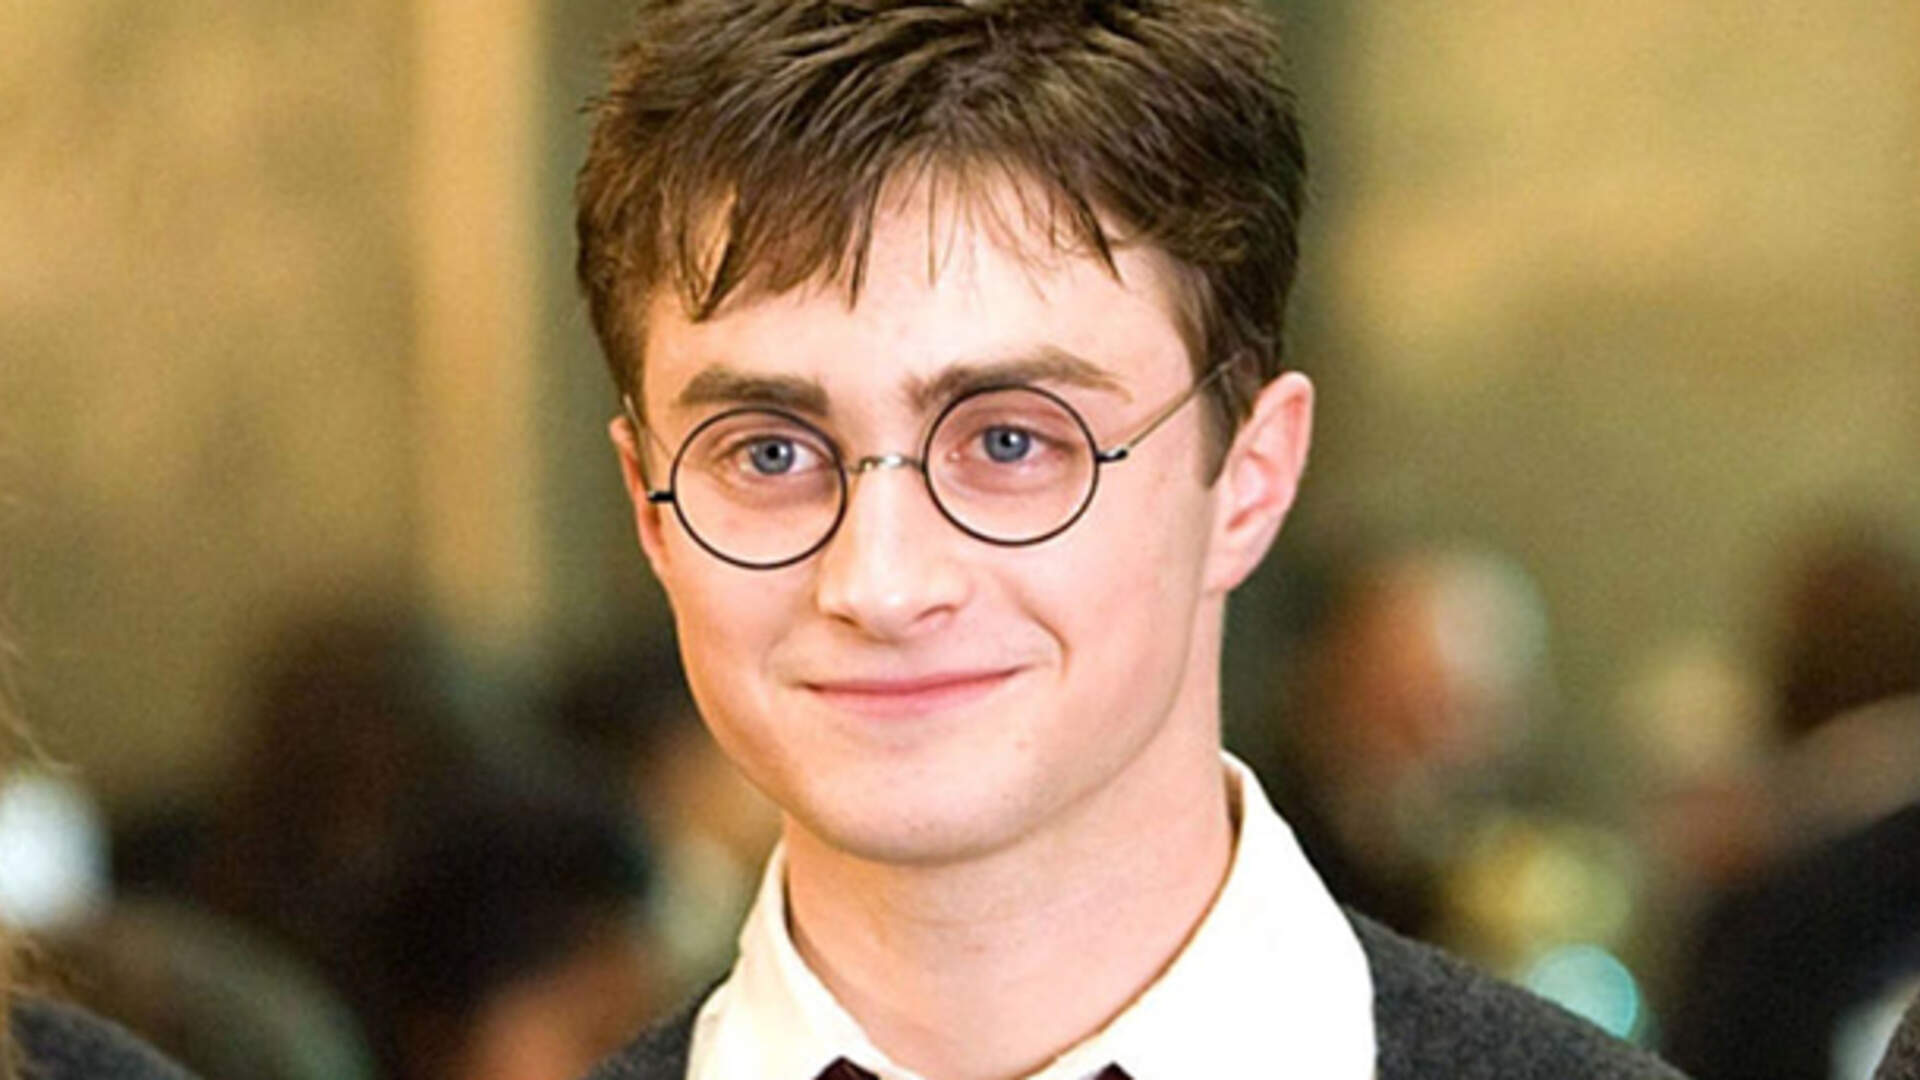 Harry Potter: Wizards Unite Release Date Confirmed for 2019